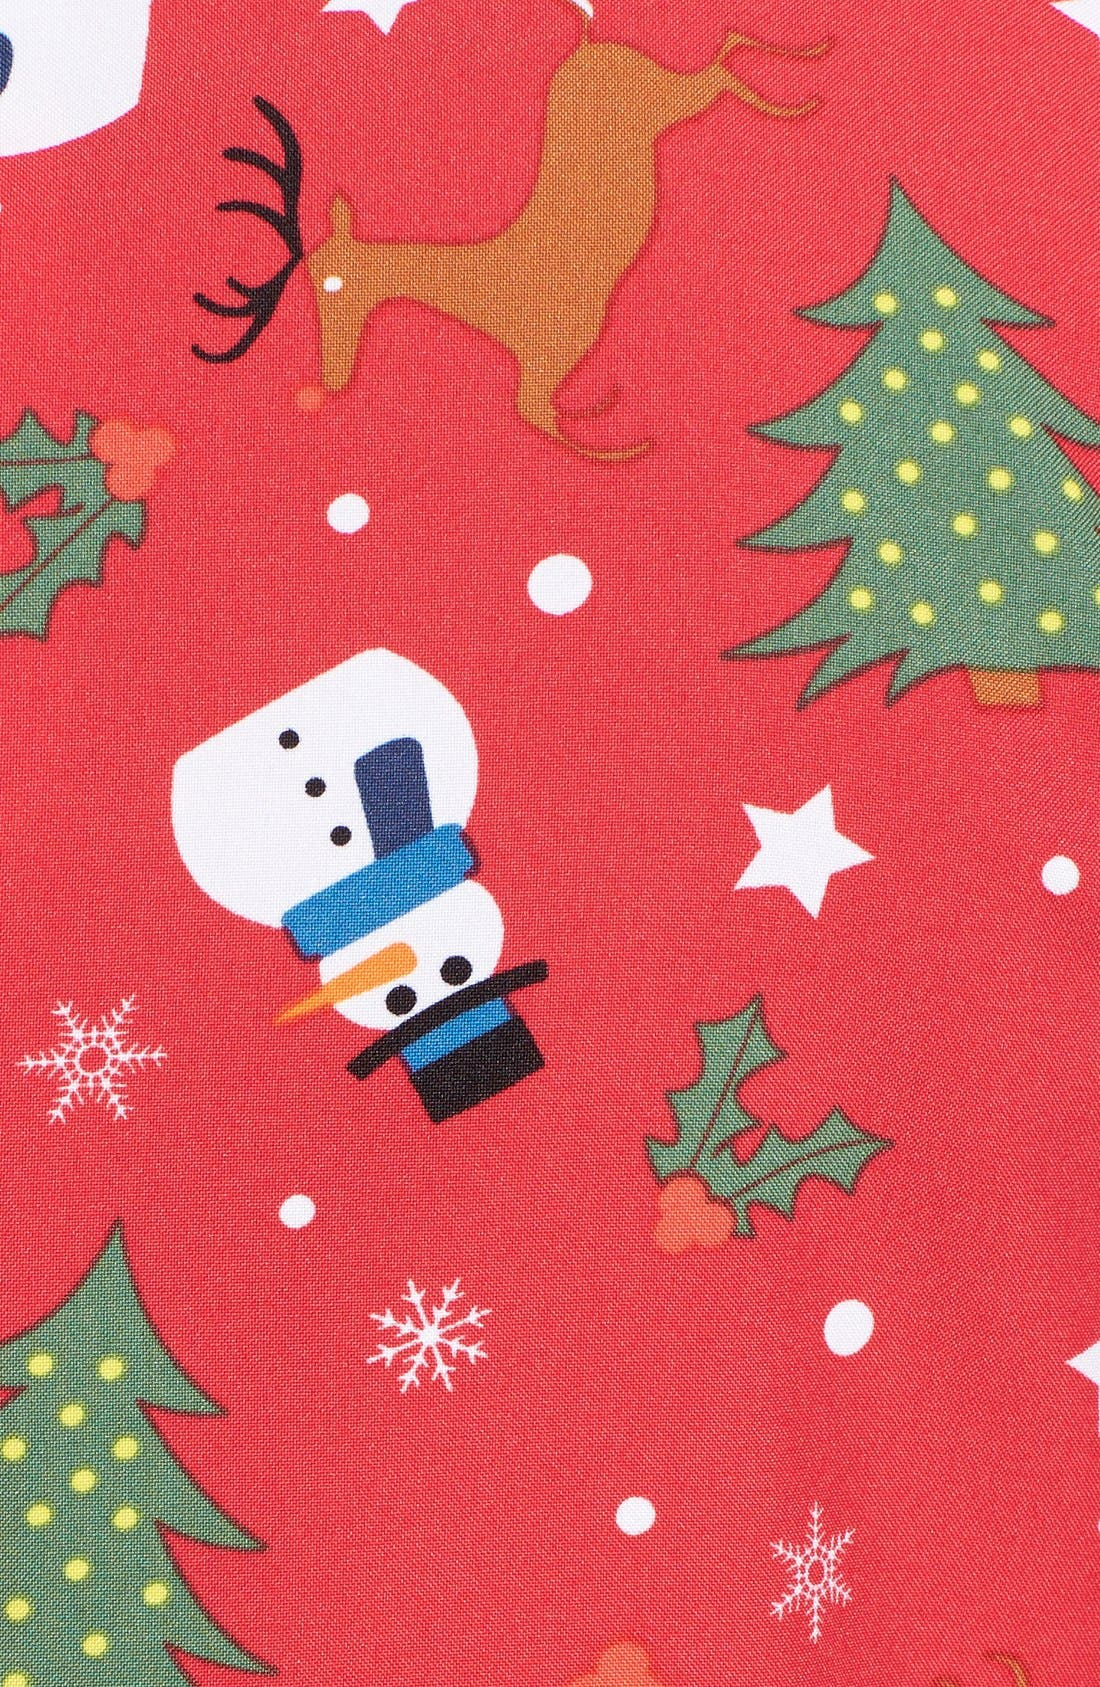 'Christmaster' Holiday Suit & Tie,                             Alternate thumbnail 5, color,                             600